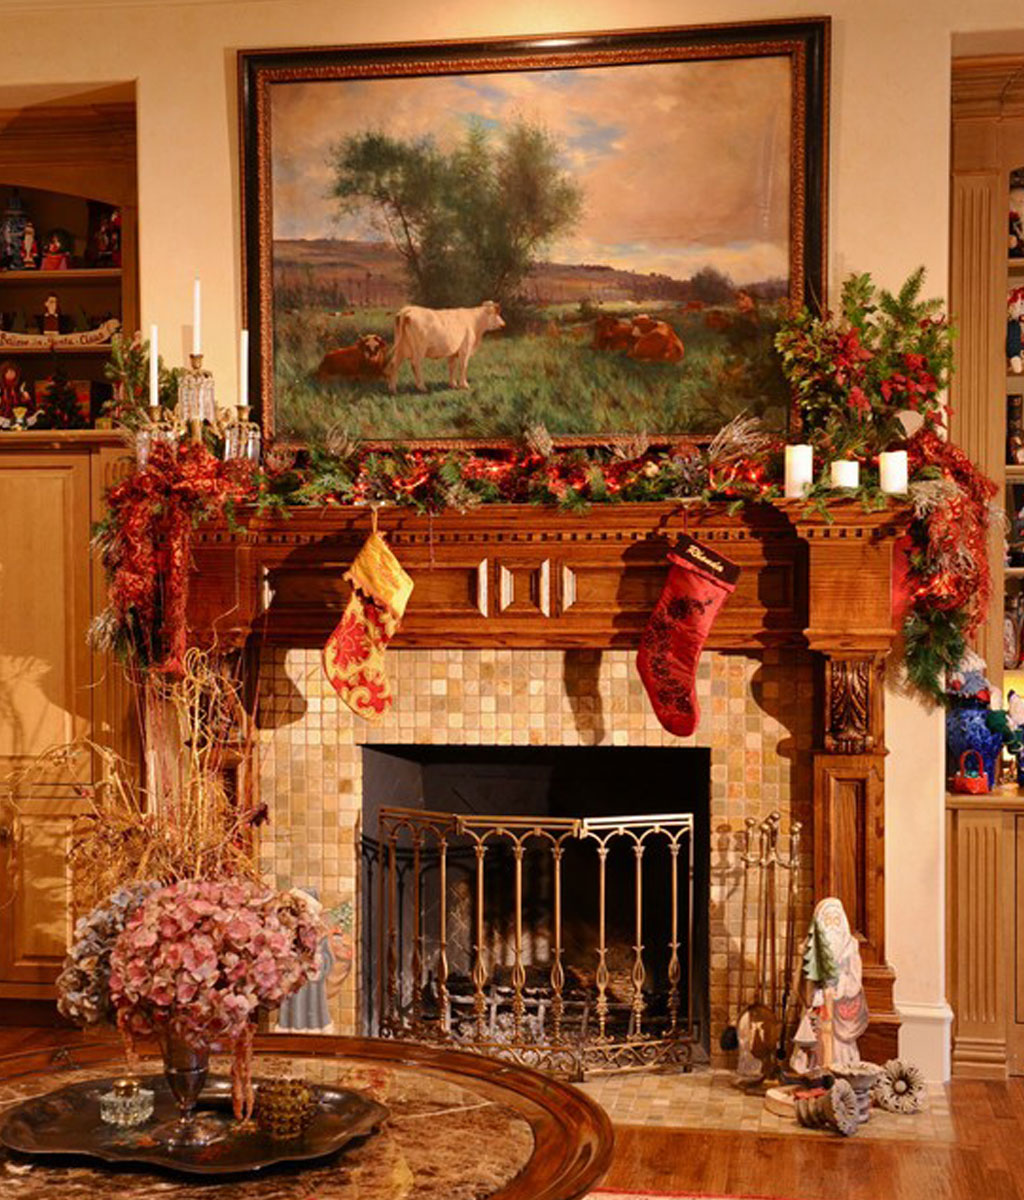 20 christmas mantel decorations ideas for this year for How to decorate a fireplace for christmas